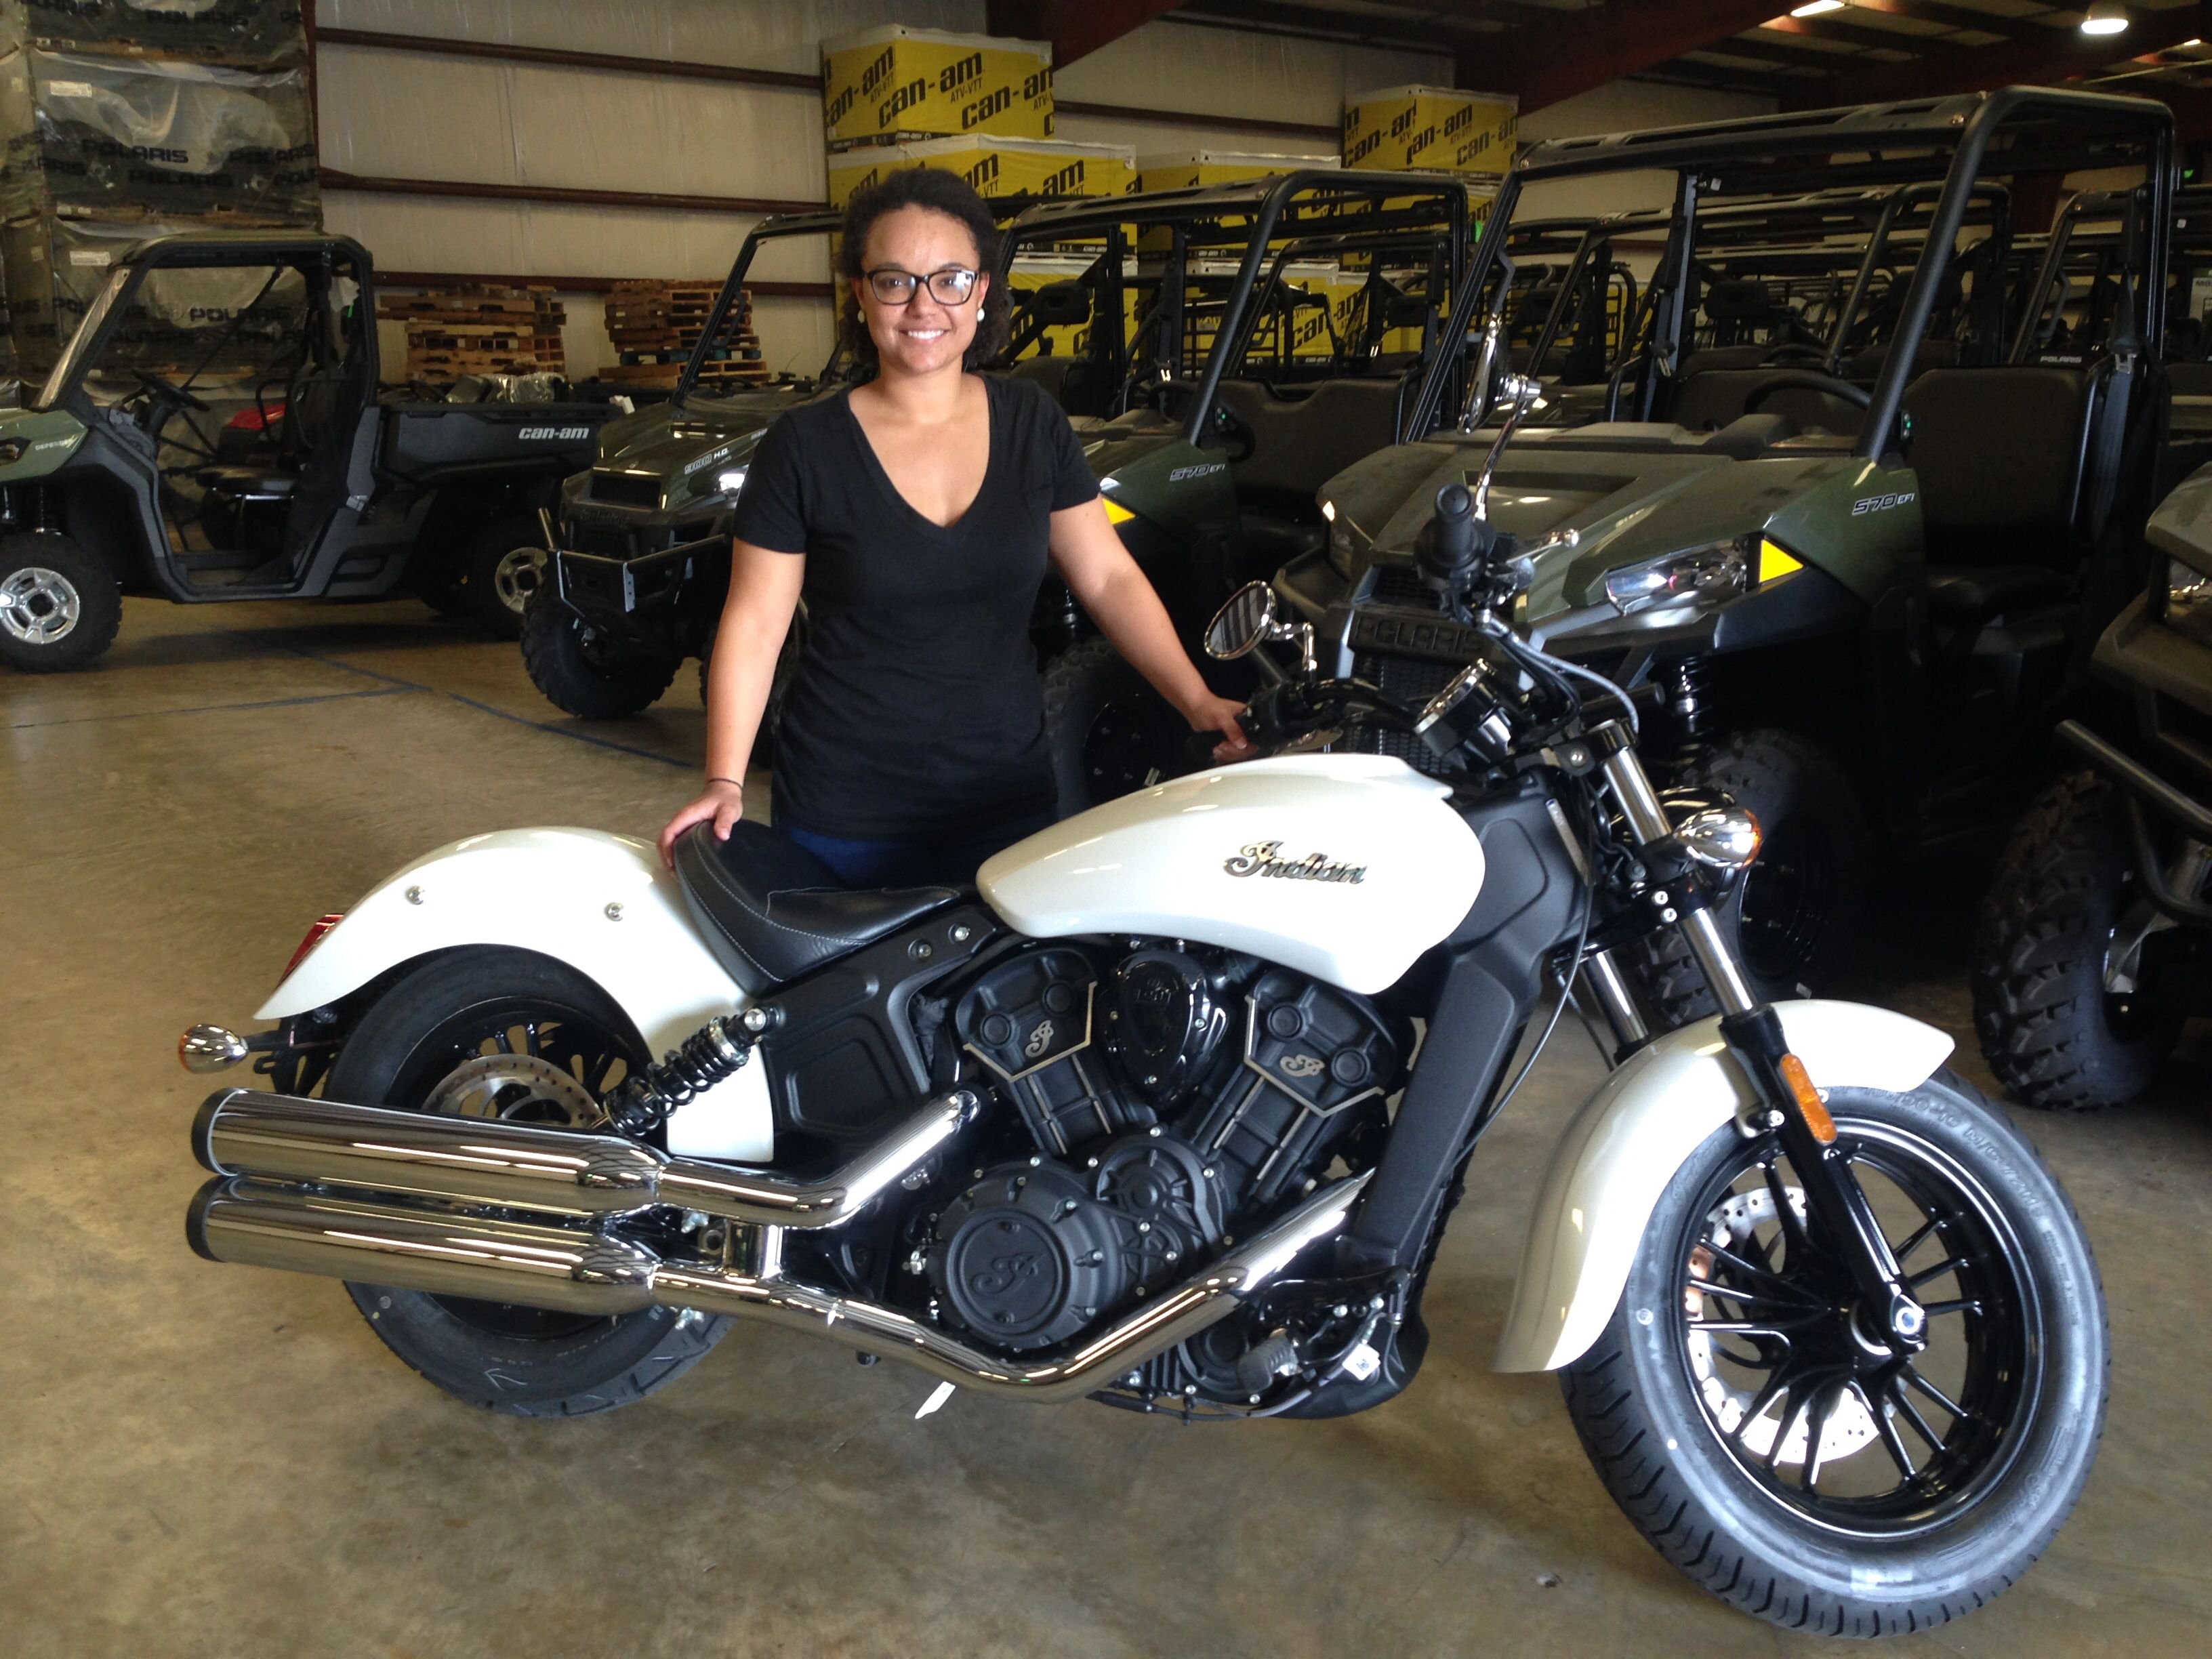 Congratulations to Amber Spence from Hattiesburg MS for purchasing